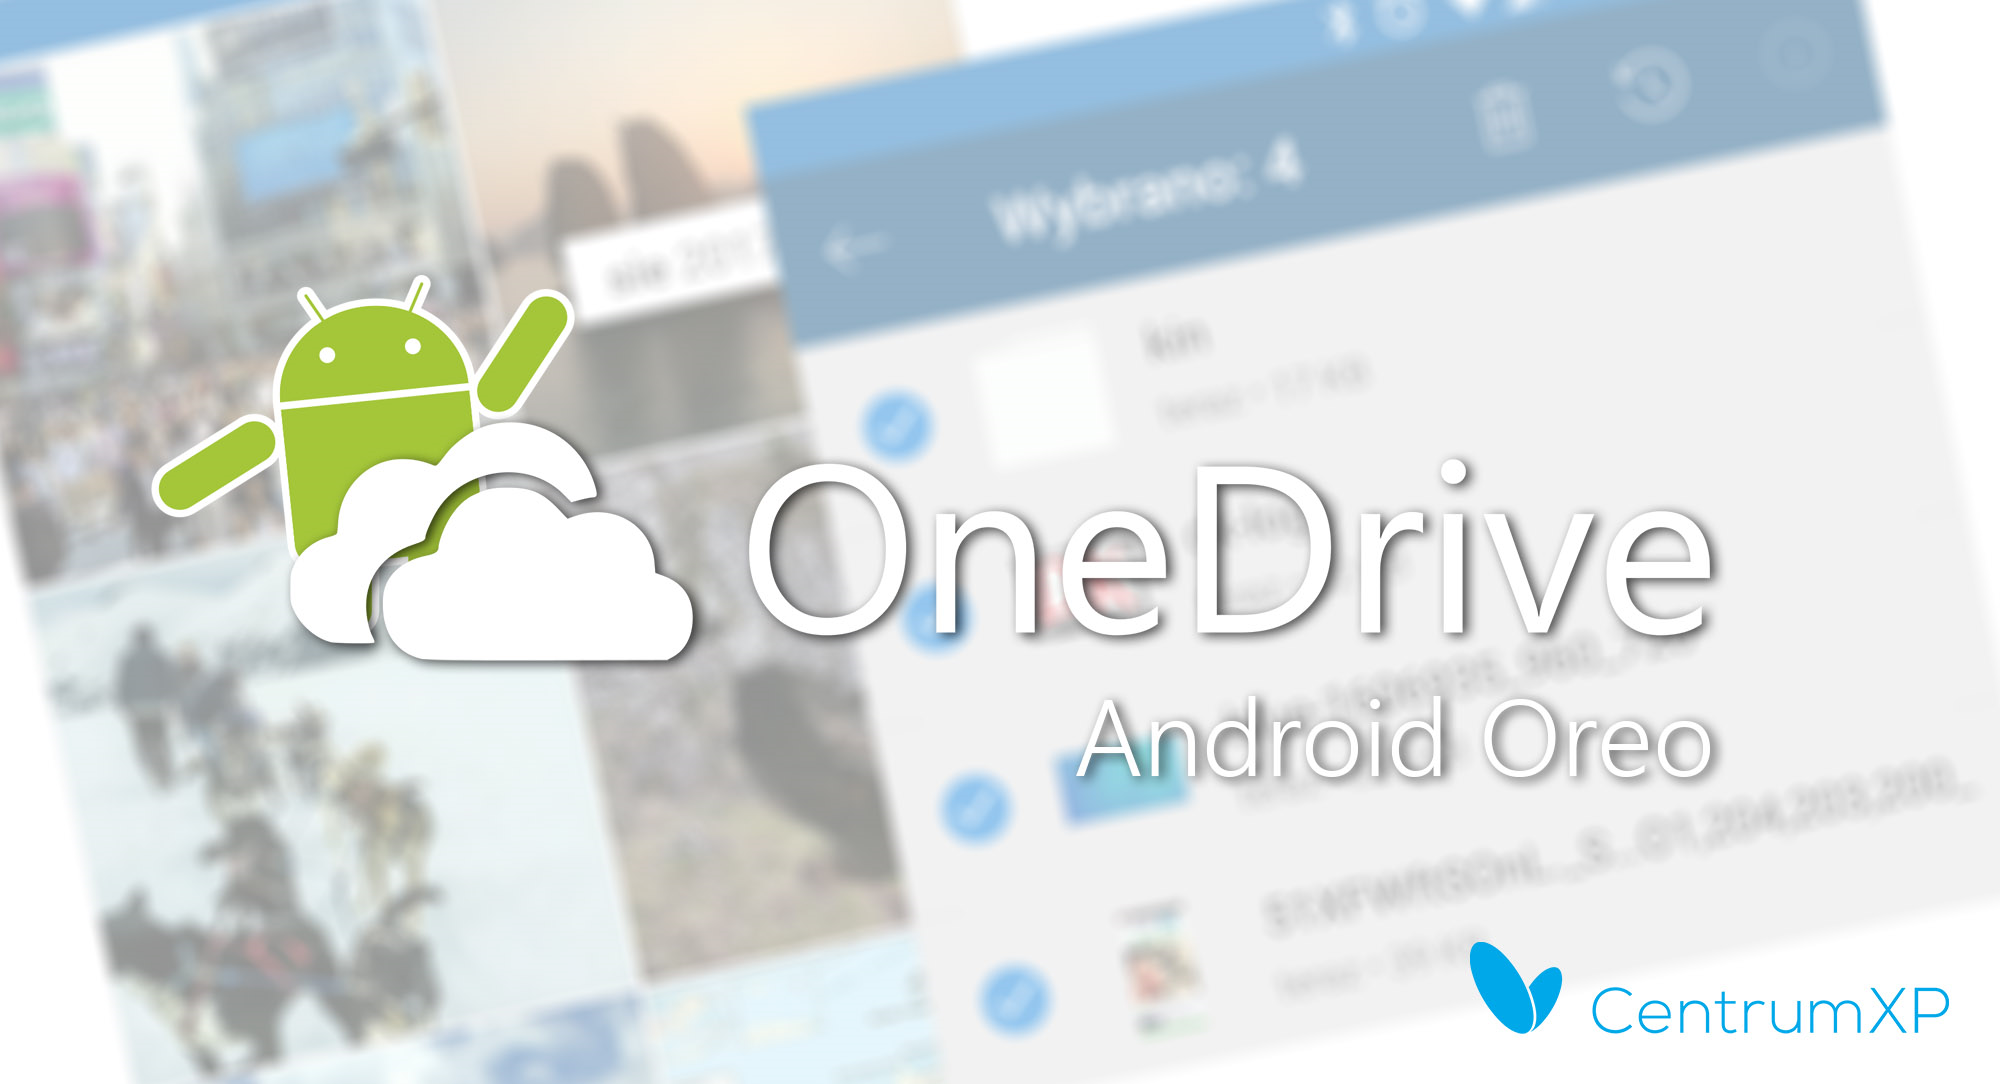 One Drive Android Oreo